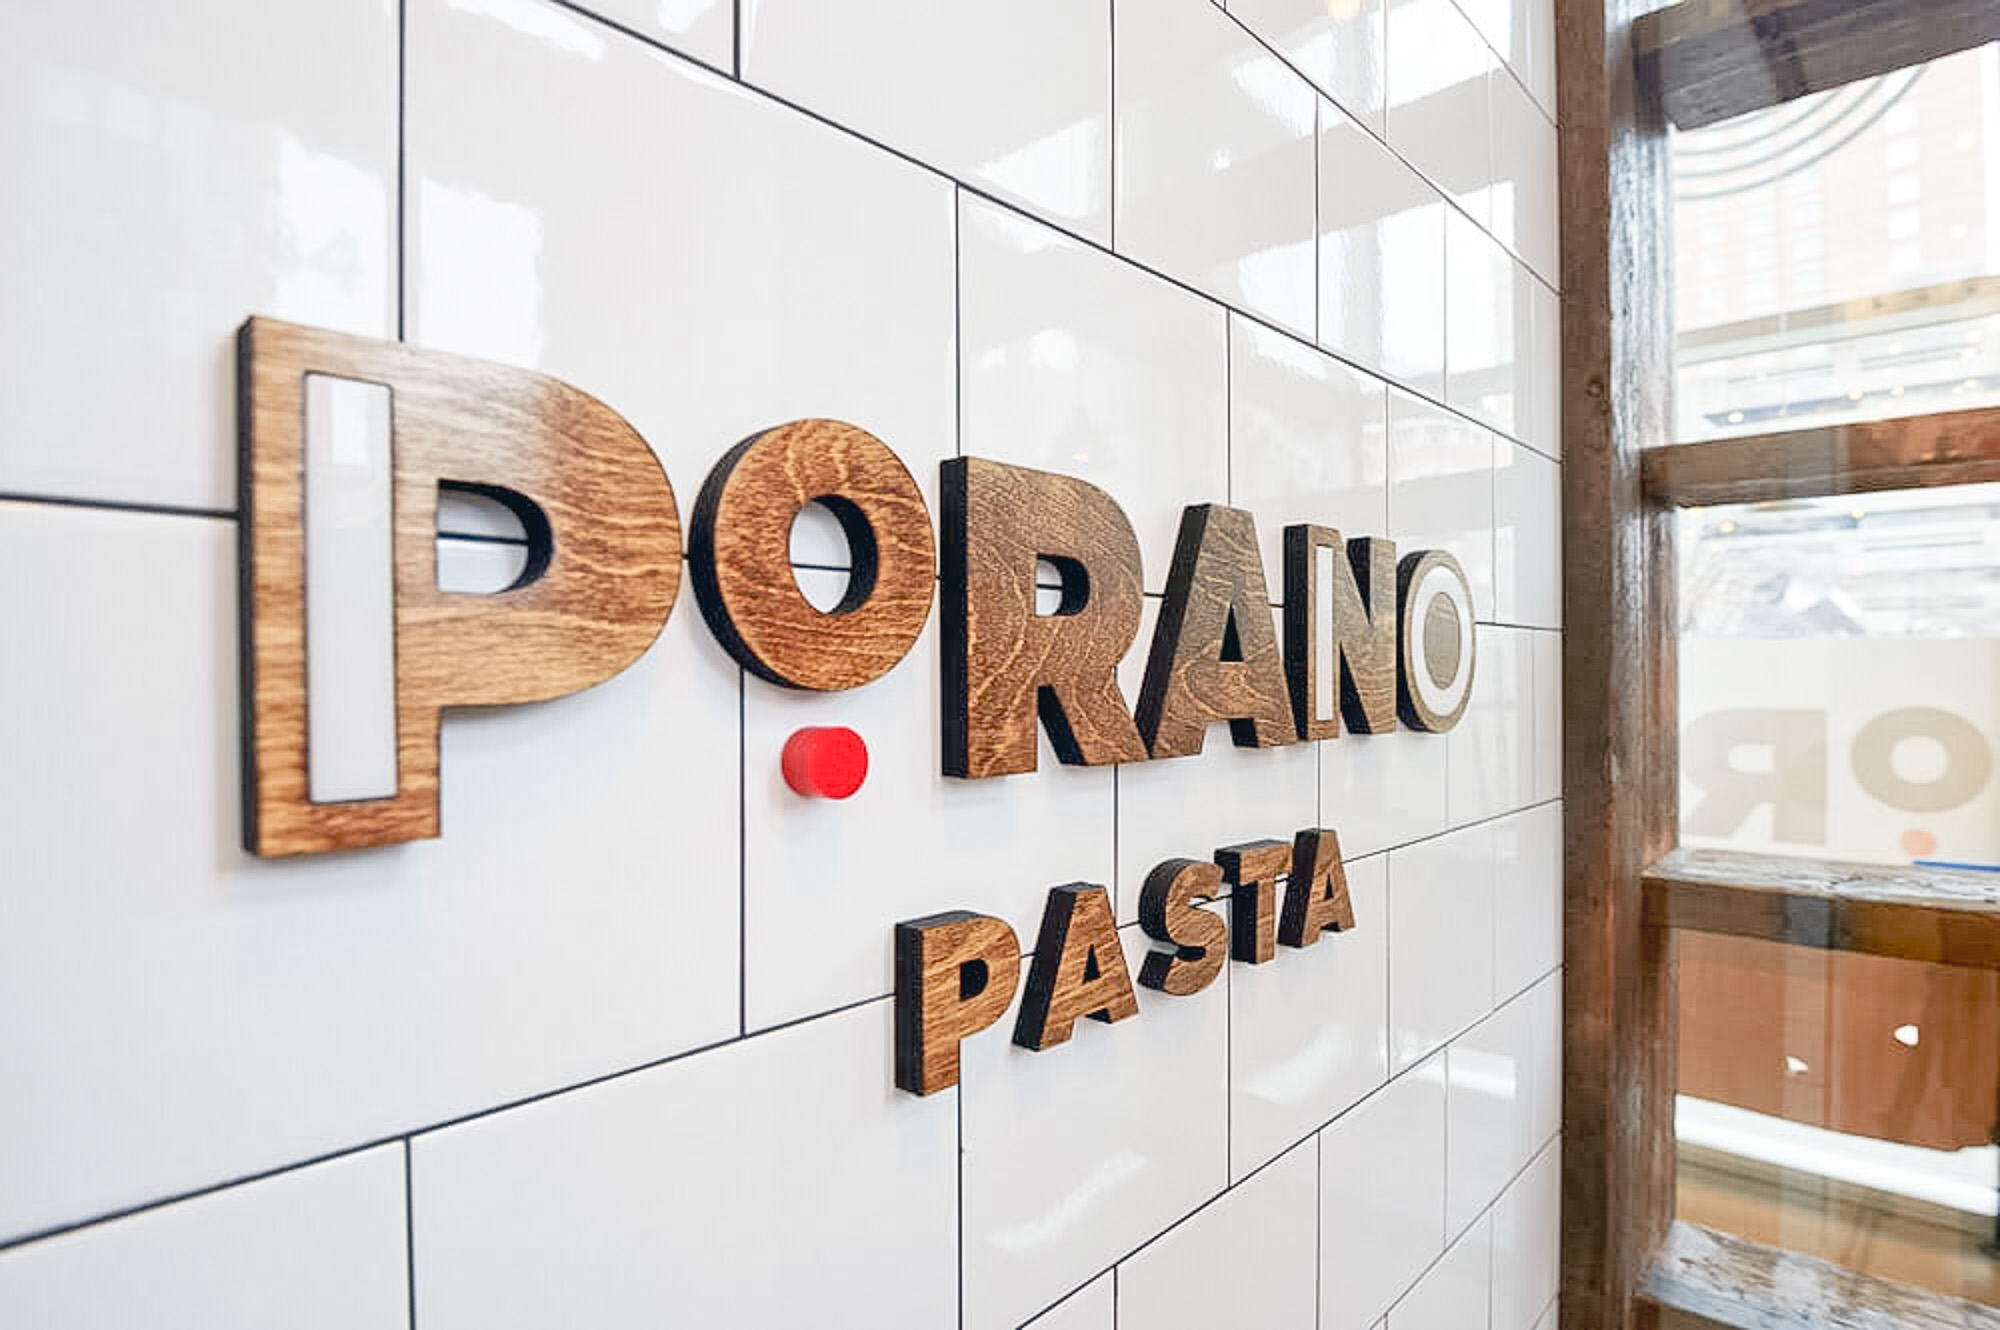 Porano Pasta dark wood and colored wood restaurant wall sign on white tile